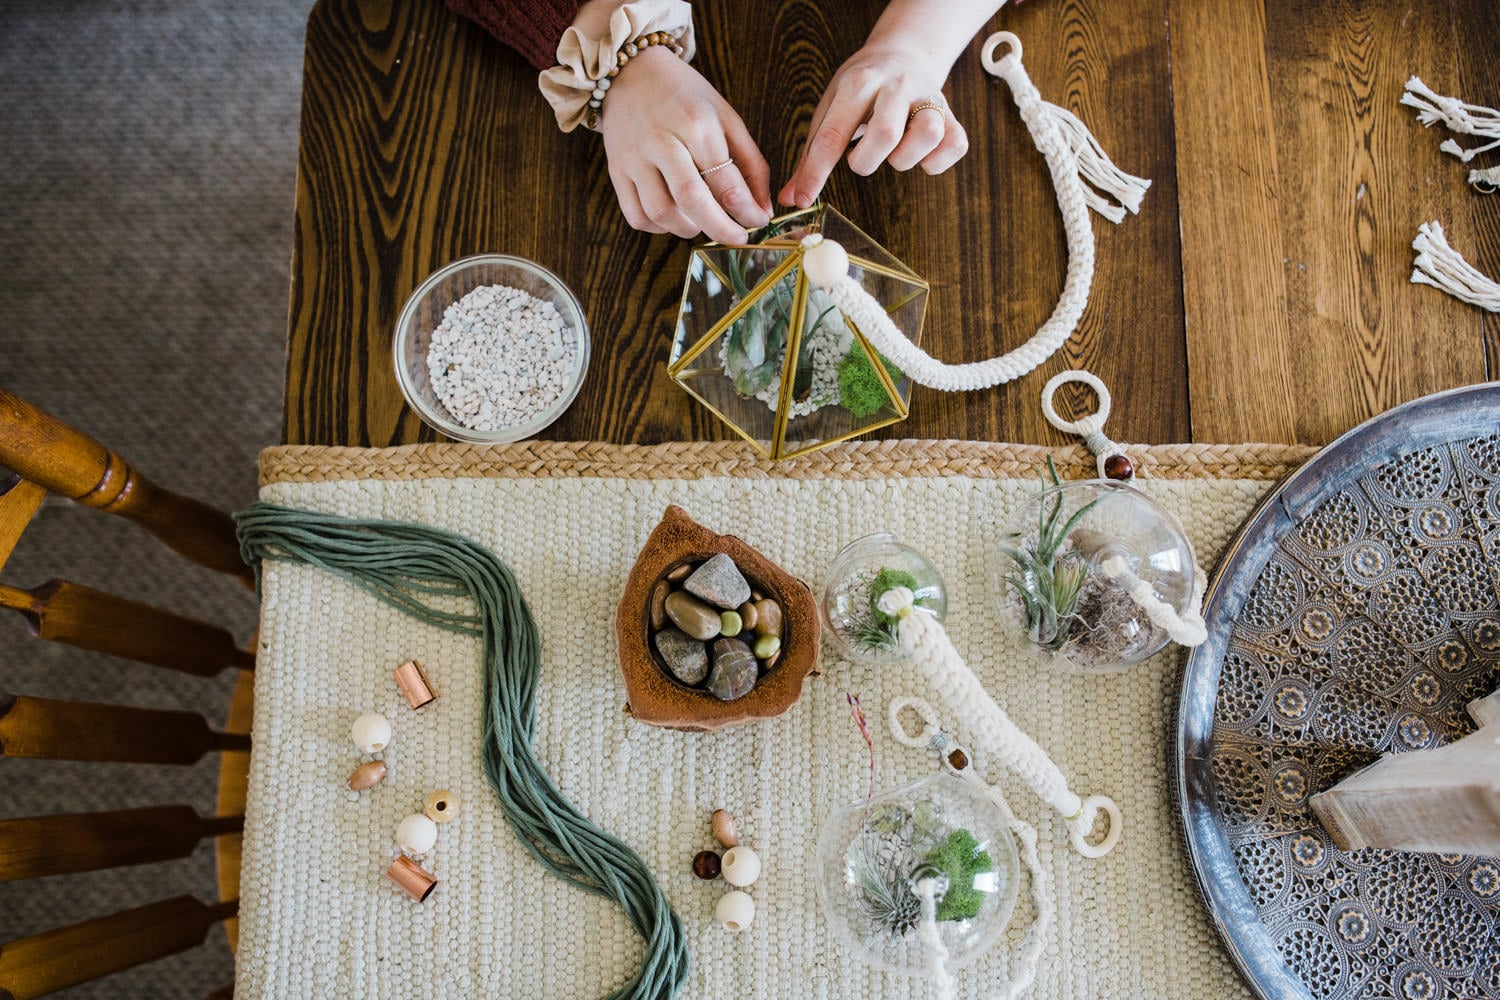 macrame and air plant details - brand photography ottawa